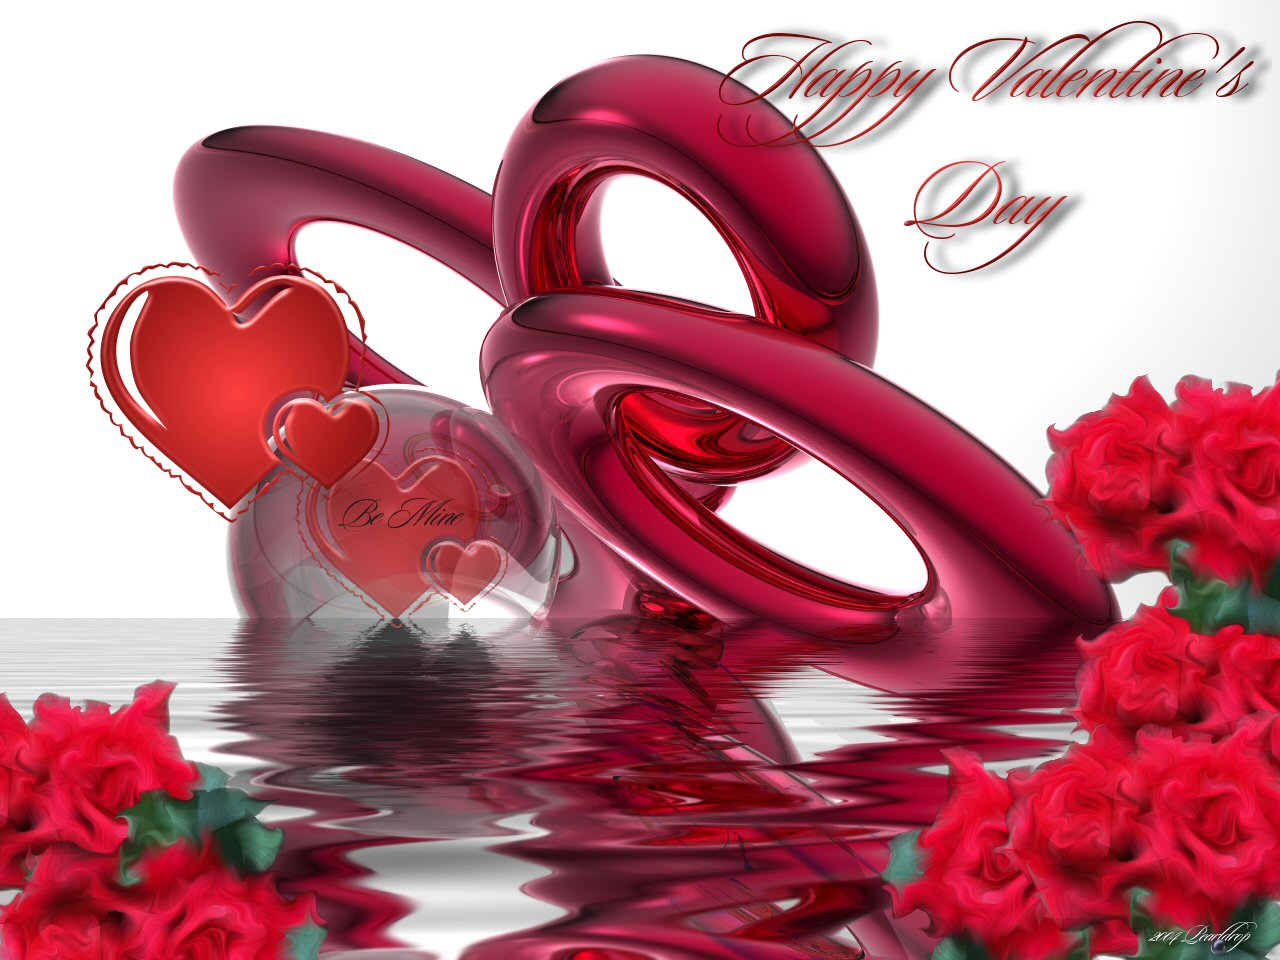 Happy Valentines Day HD Wallpaper Collection 1280x960